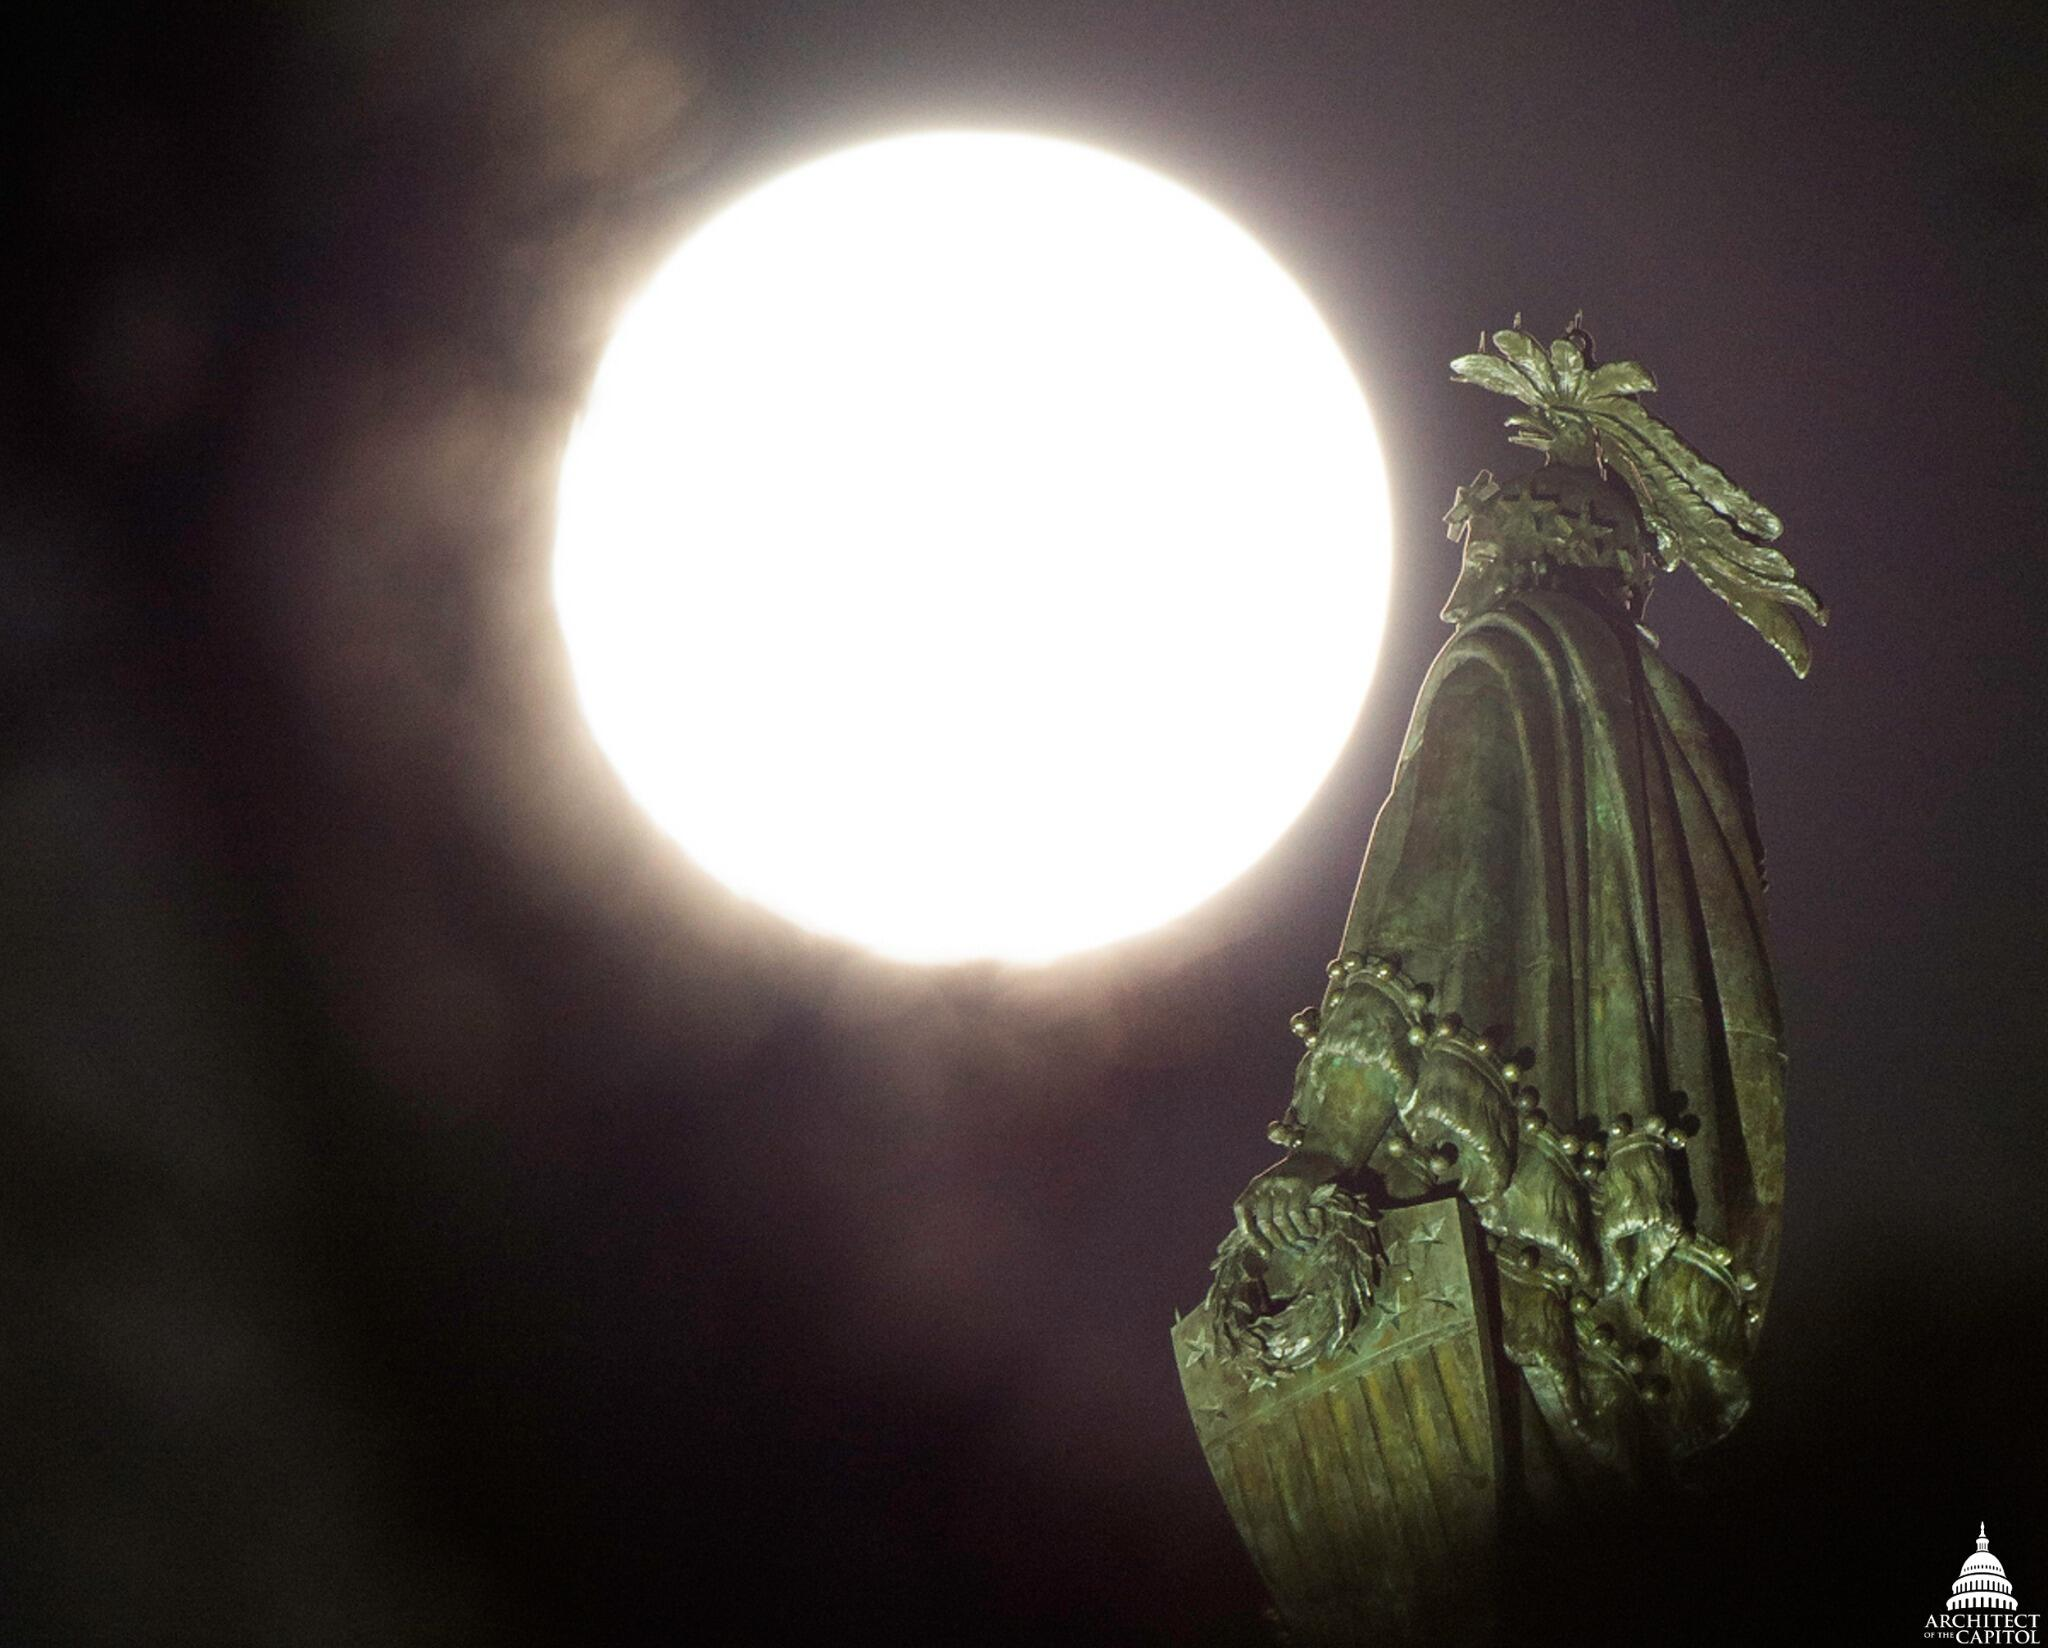 ICYMI: Supermoon on Saturday rises over the Statue of Freedom atop the Capitol. #DC http://t.co/GASsnZAhxo